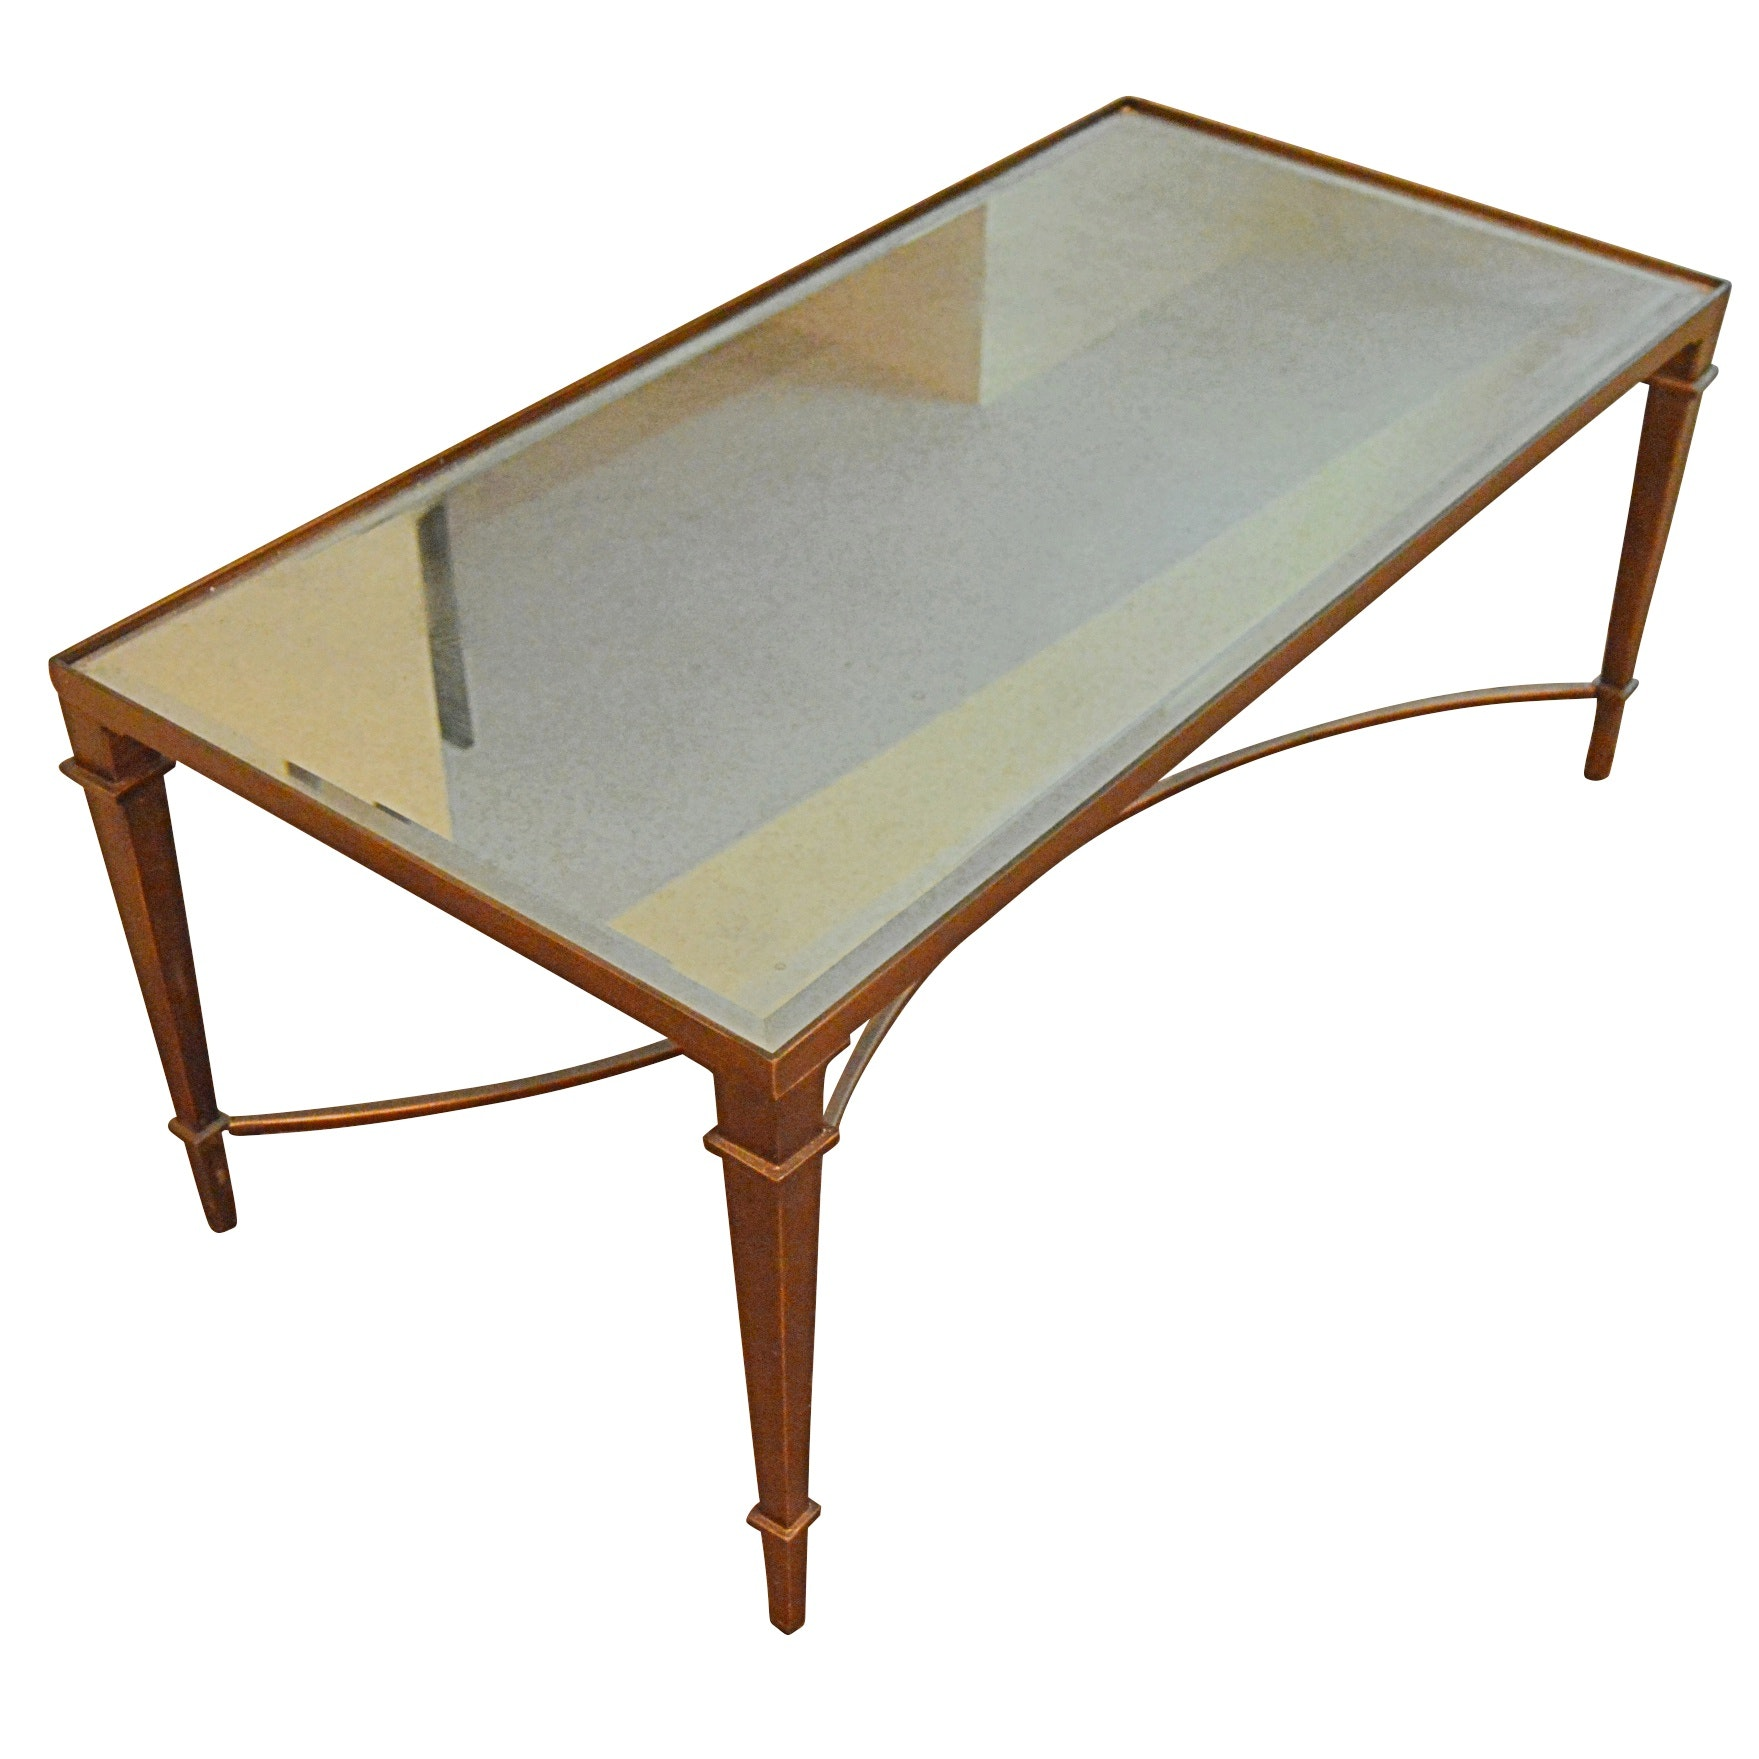 Contemporary Metal and Glass Cocktail Table with Mirrored Top